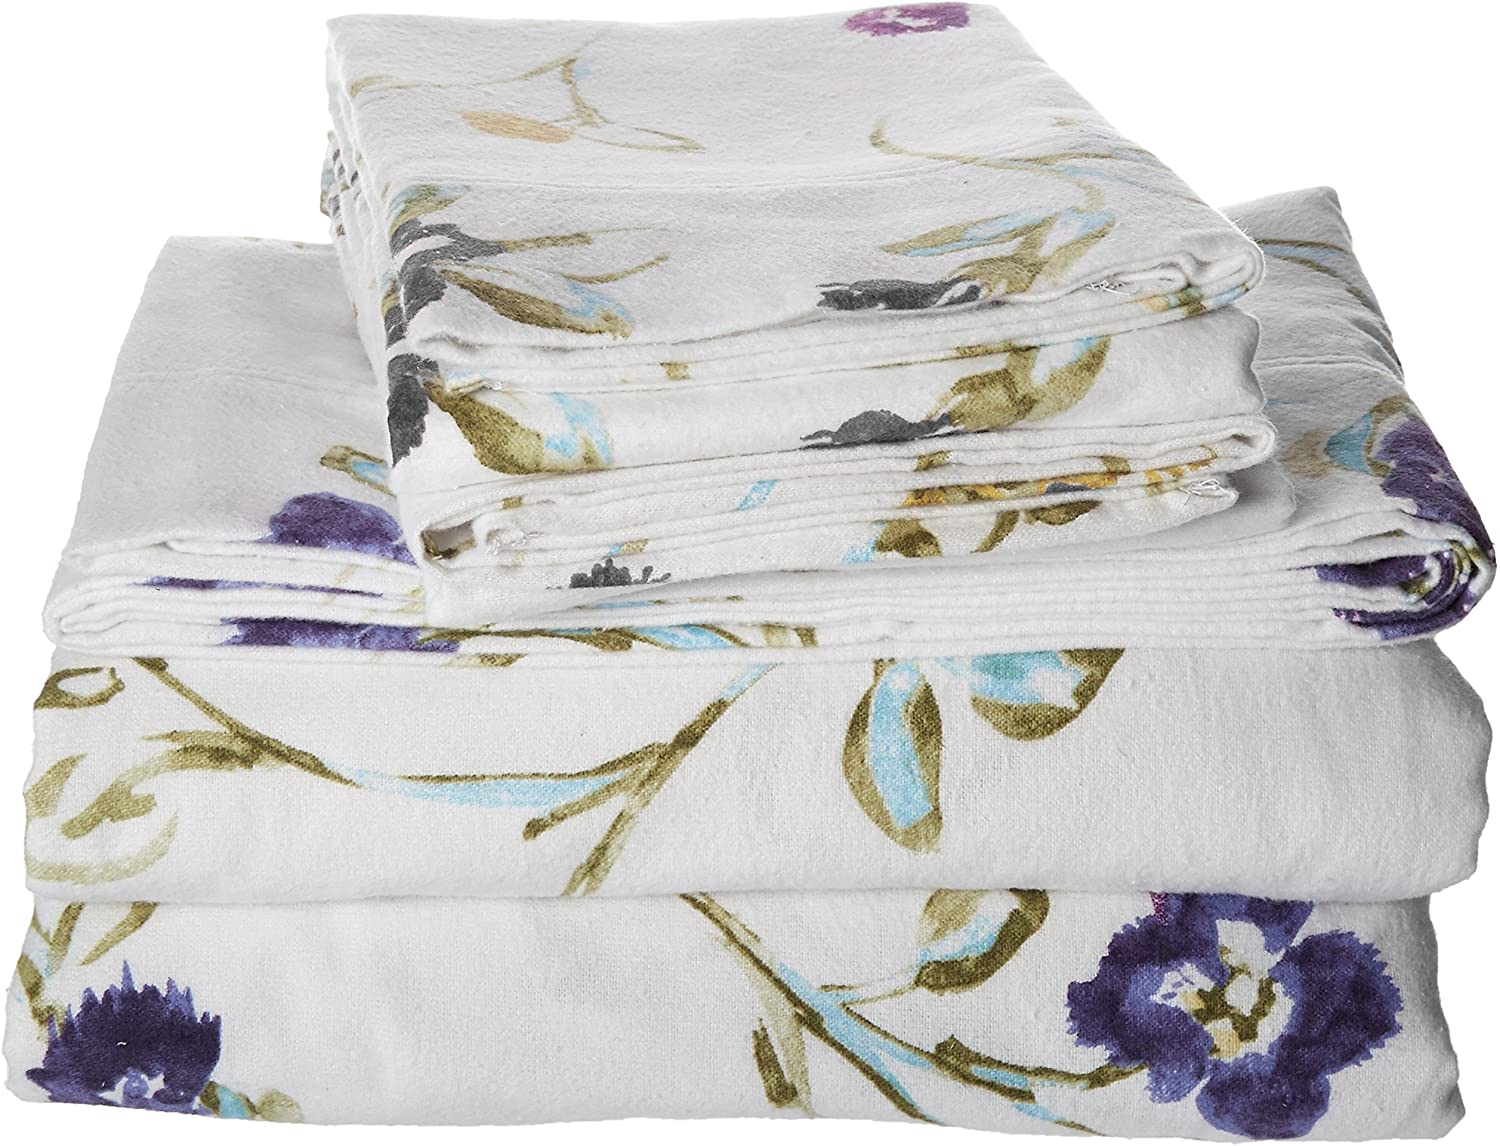 Tribeca Living King Floral Garden Printed Extra Deep Pocket Flannel Sheet Set Size King